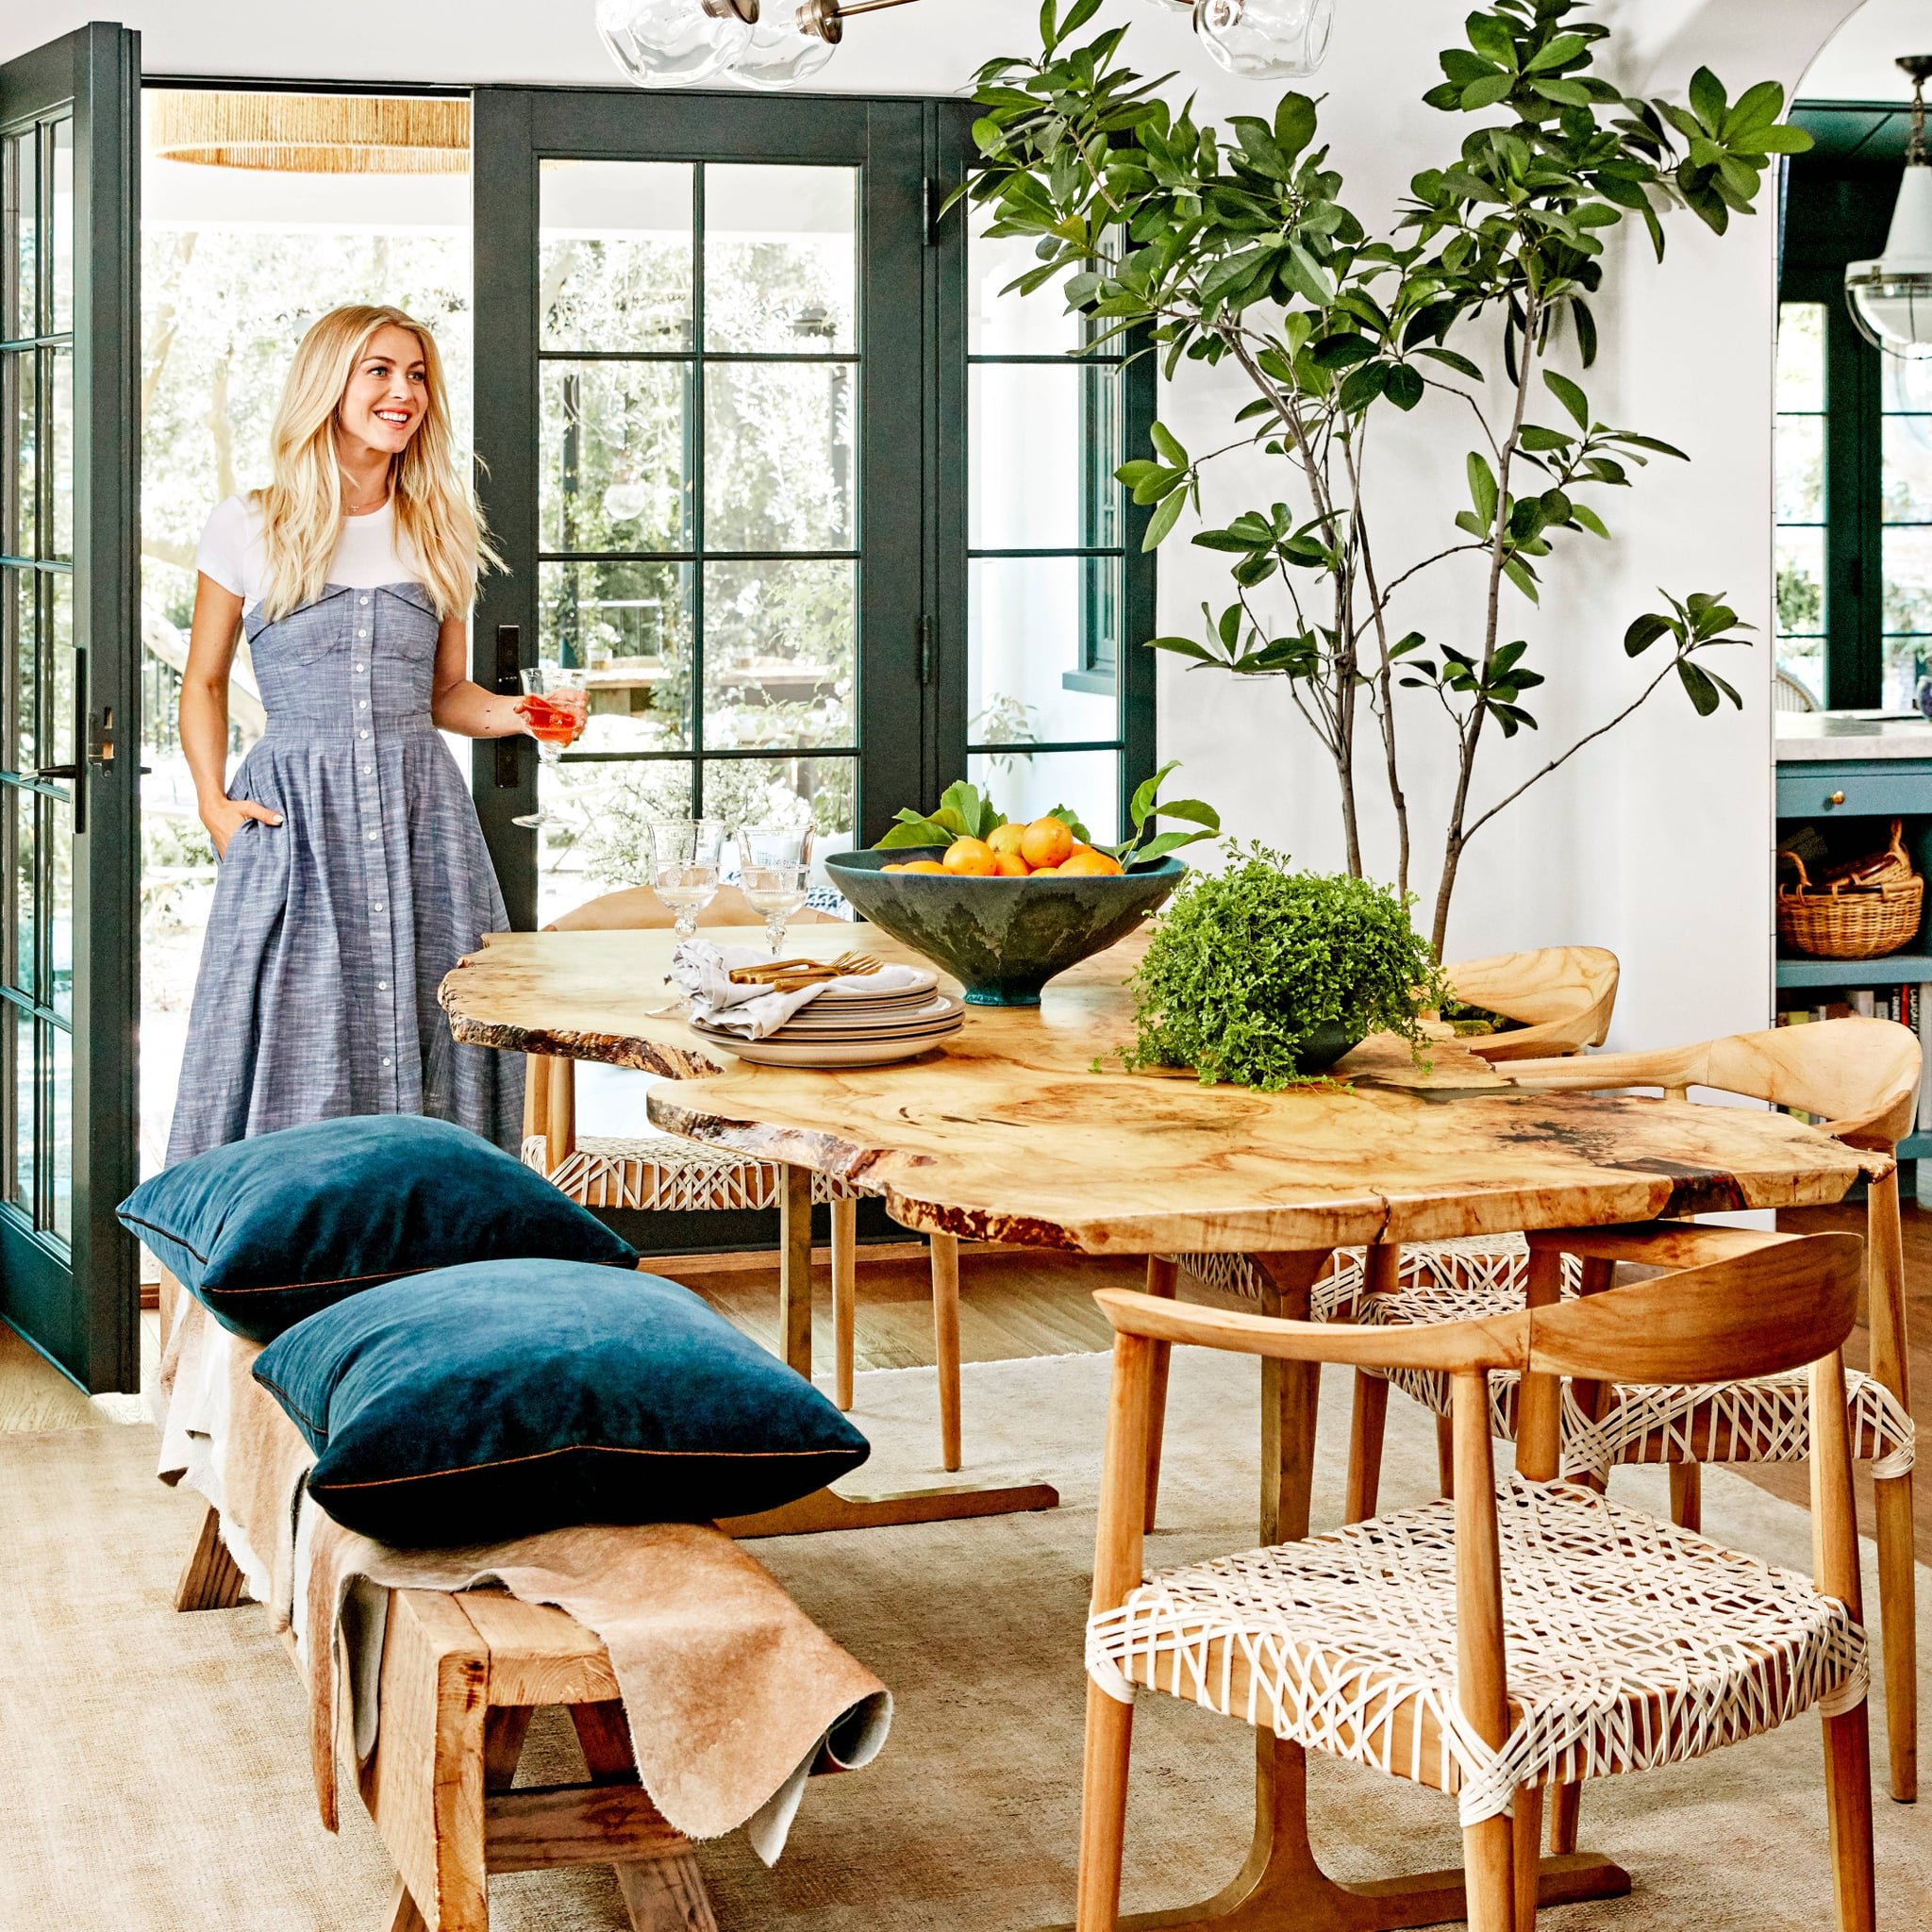 Julianne Hough Better Homes Gardens POPSUGAR Home